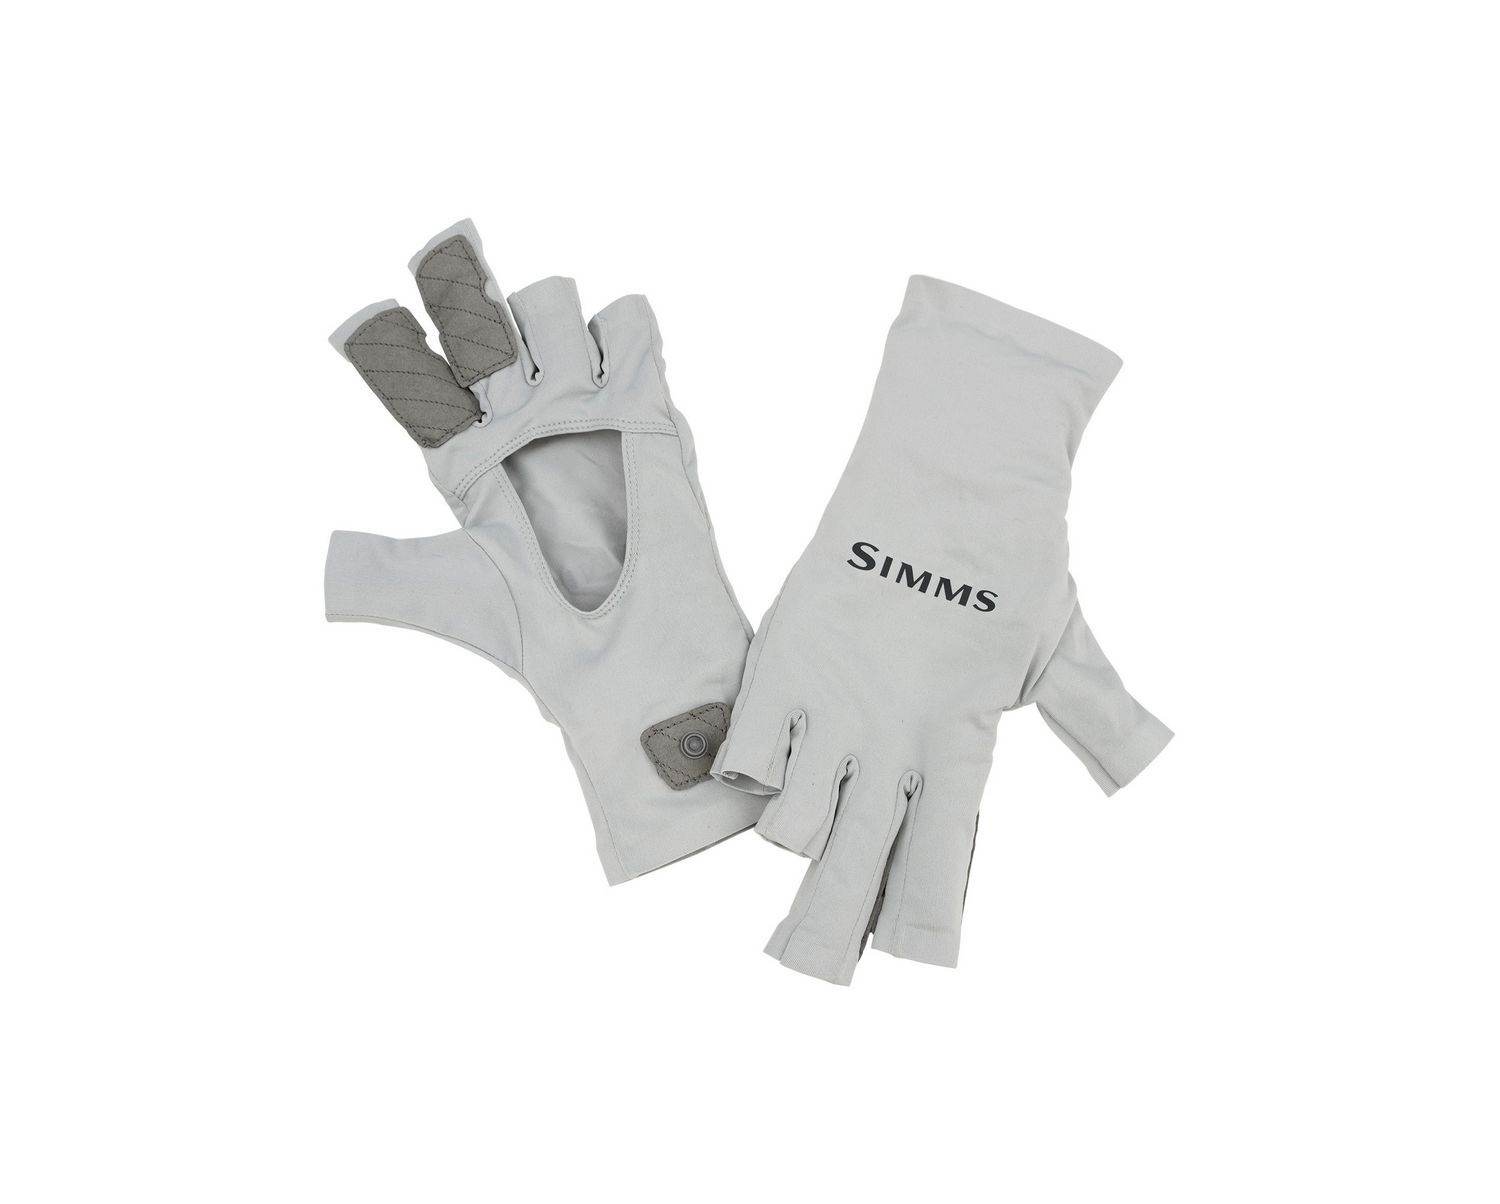 Simms Fishing Solarflex Sunglove